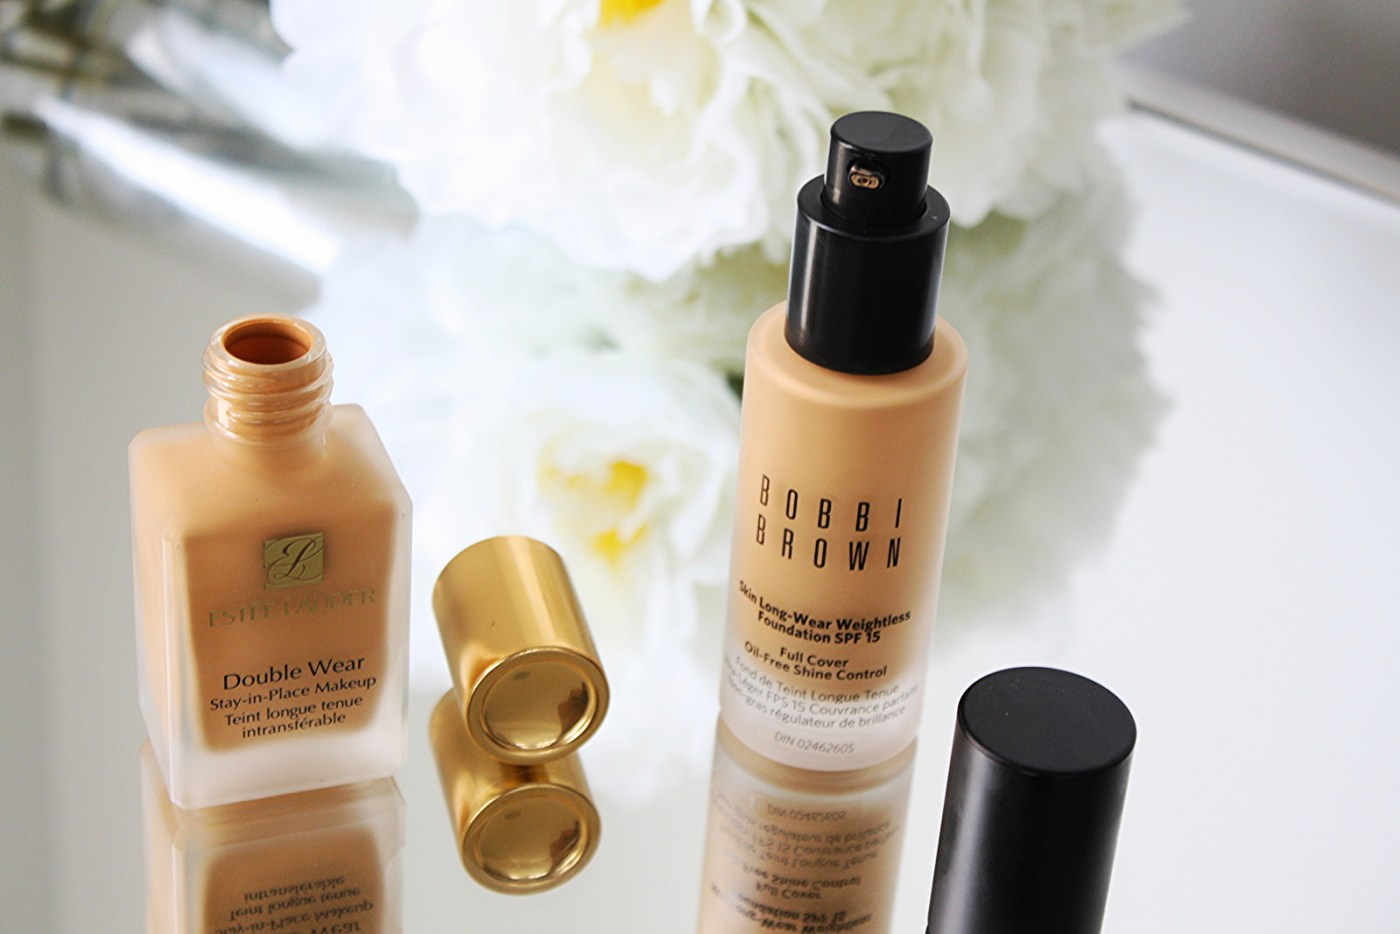 FOUNDATION TESTING WITH ESTÉE LAUDER AND BOBBI BROWN